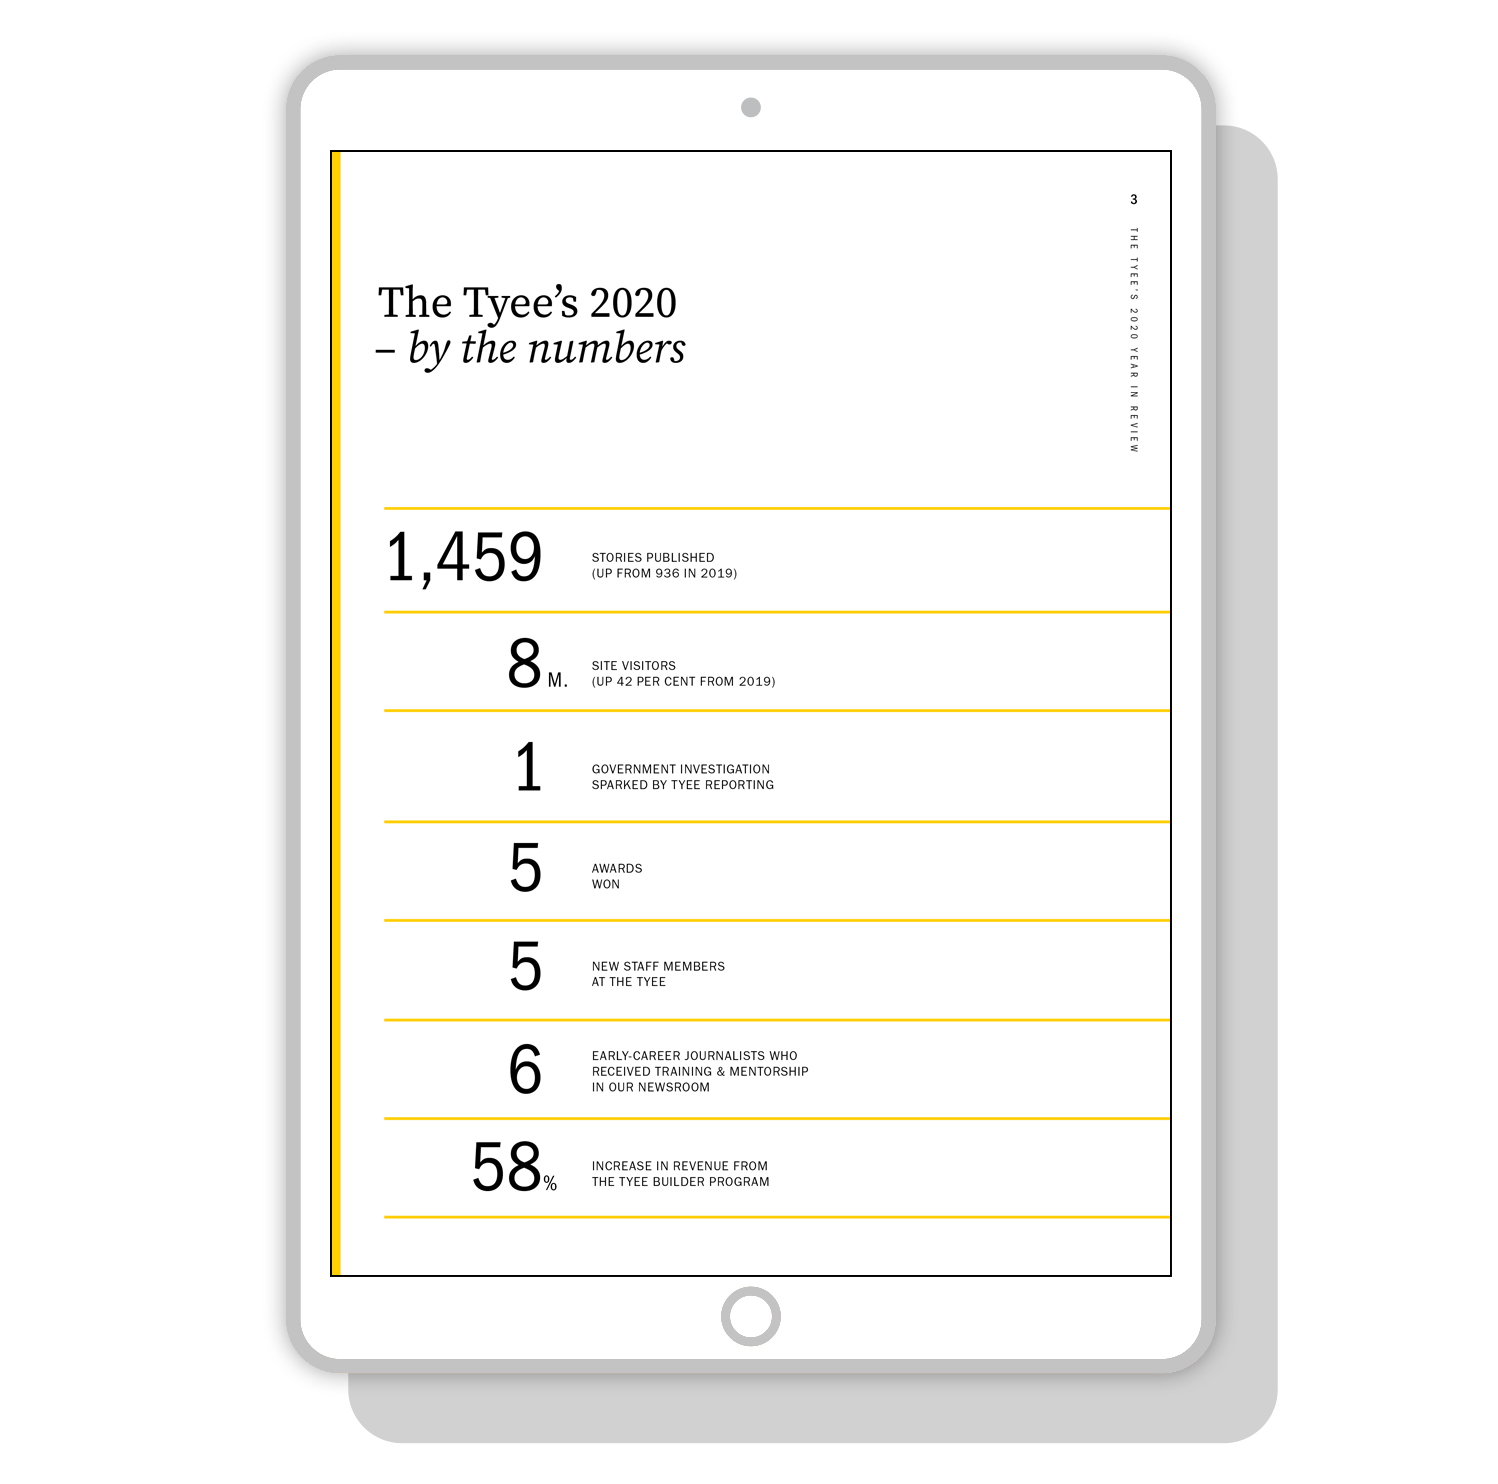 The Tyee's 2020 by the numbers - Stat designs for The Tyee's digital Annual Report | by www.alicia-carvalho.com